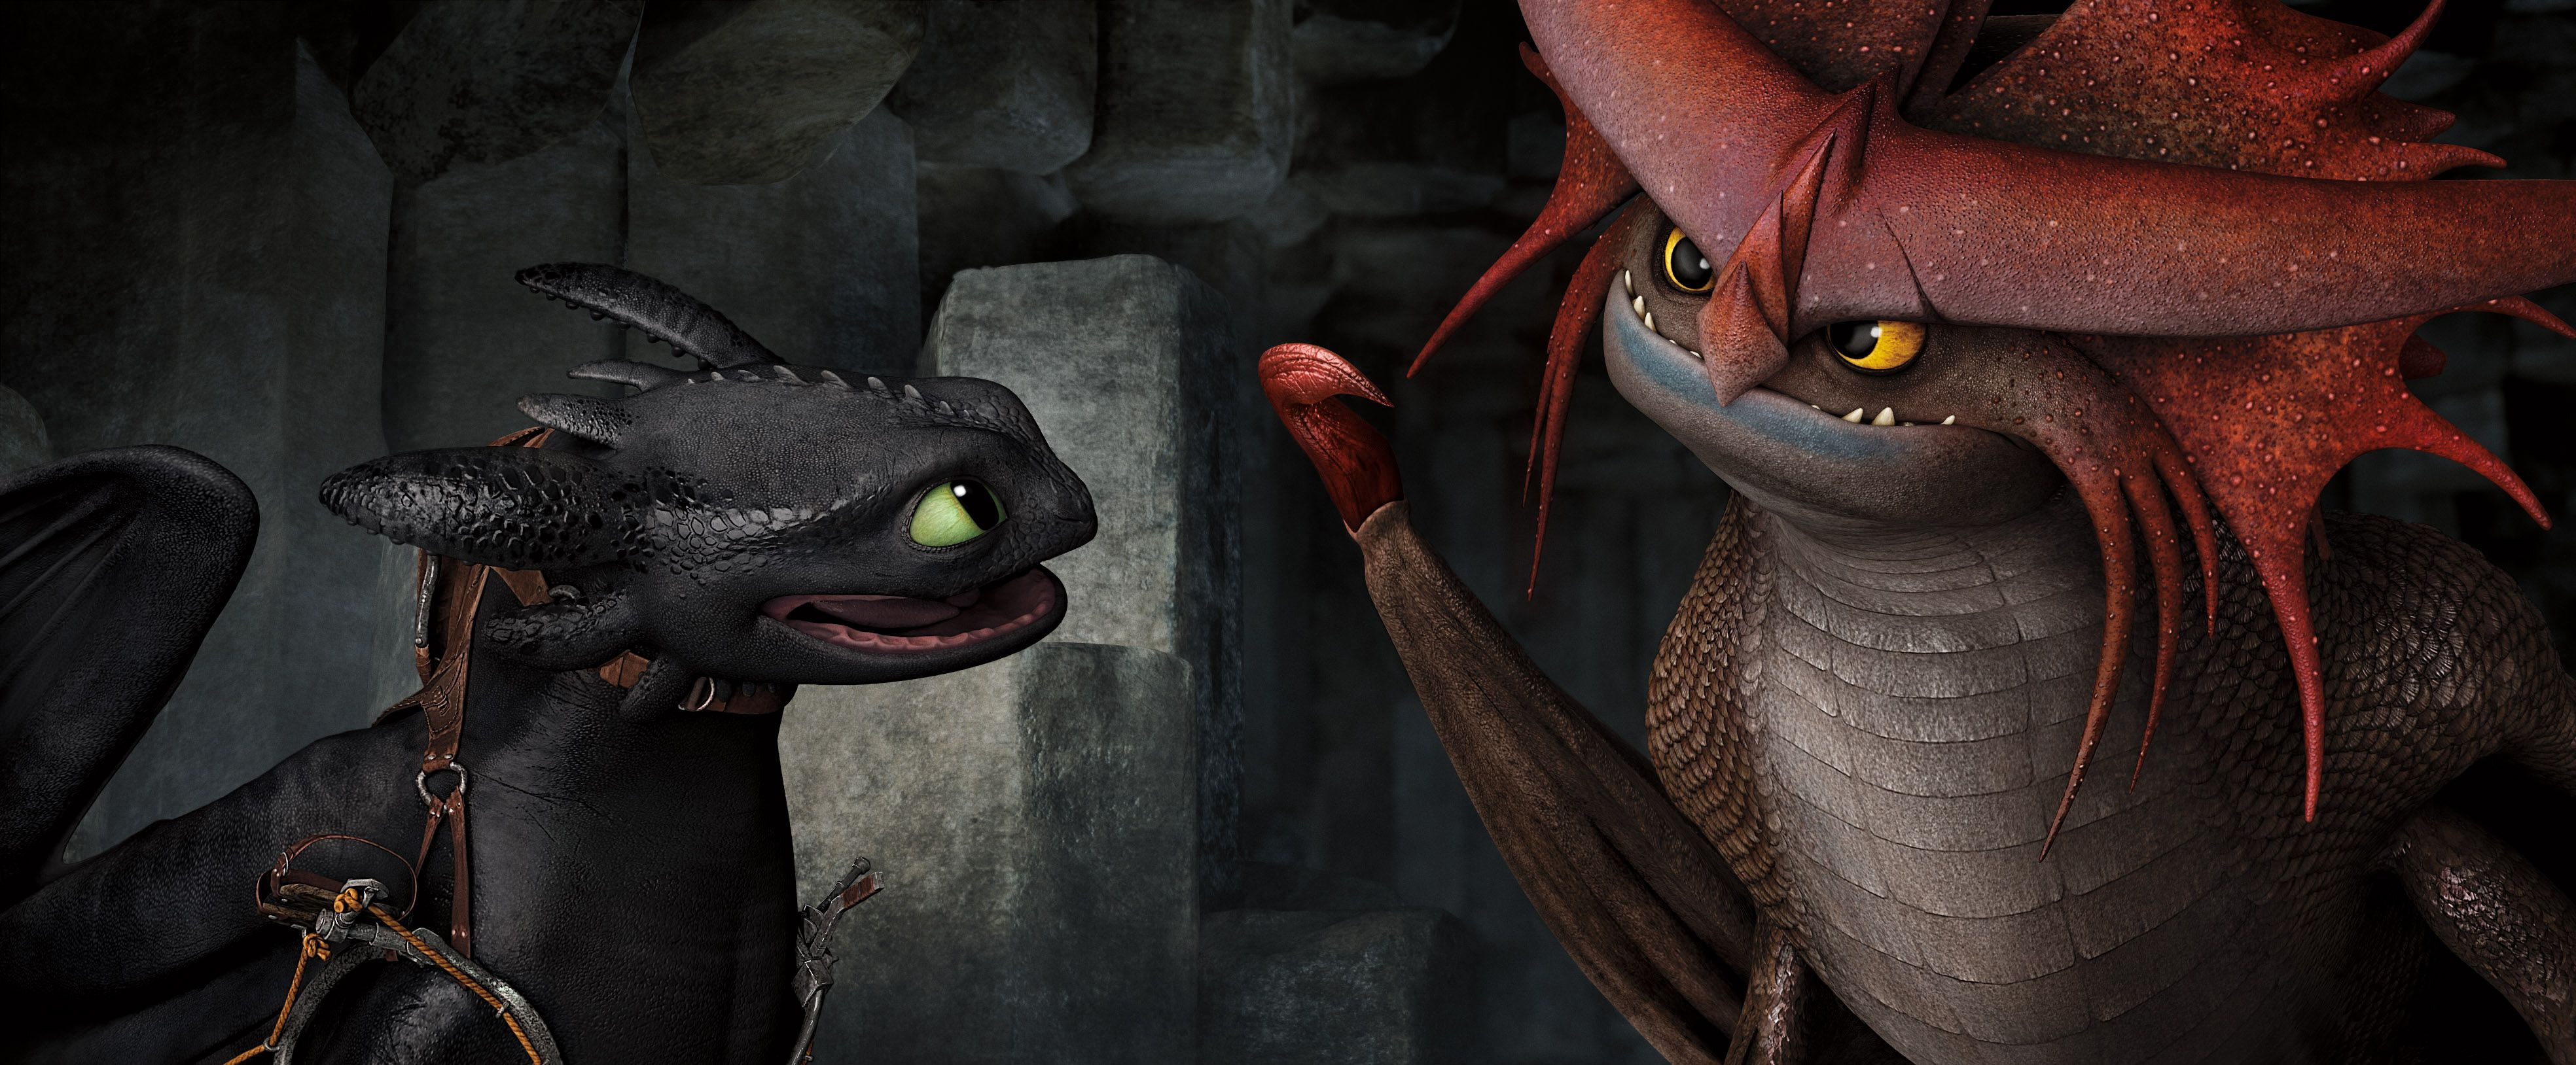 How to train your dragon 3 dean deblois reveals story details how to train your dragon 3 image ccuart Images